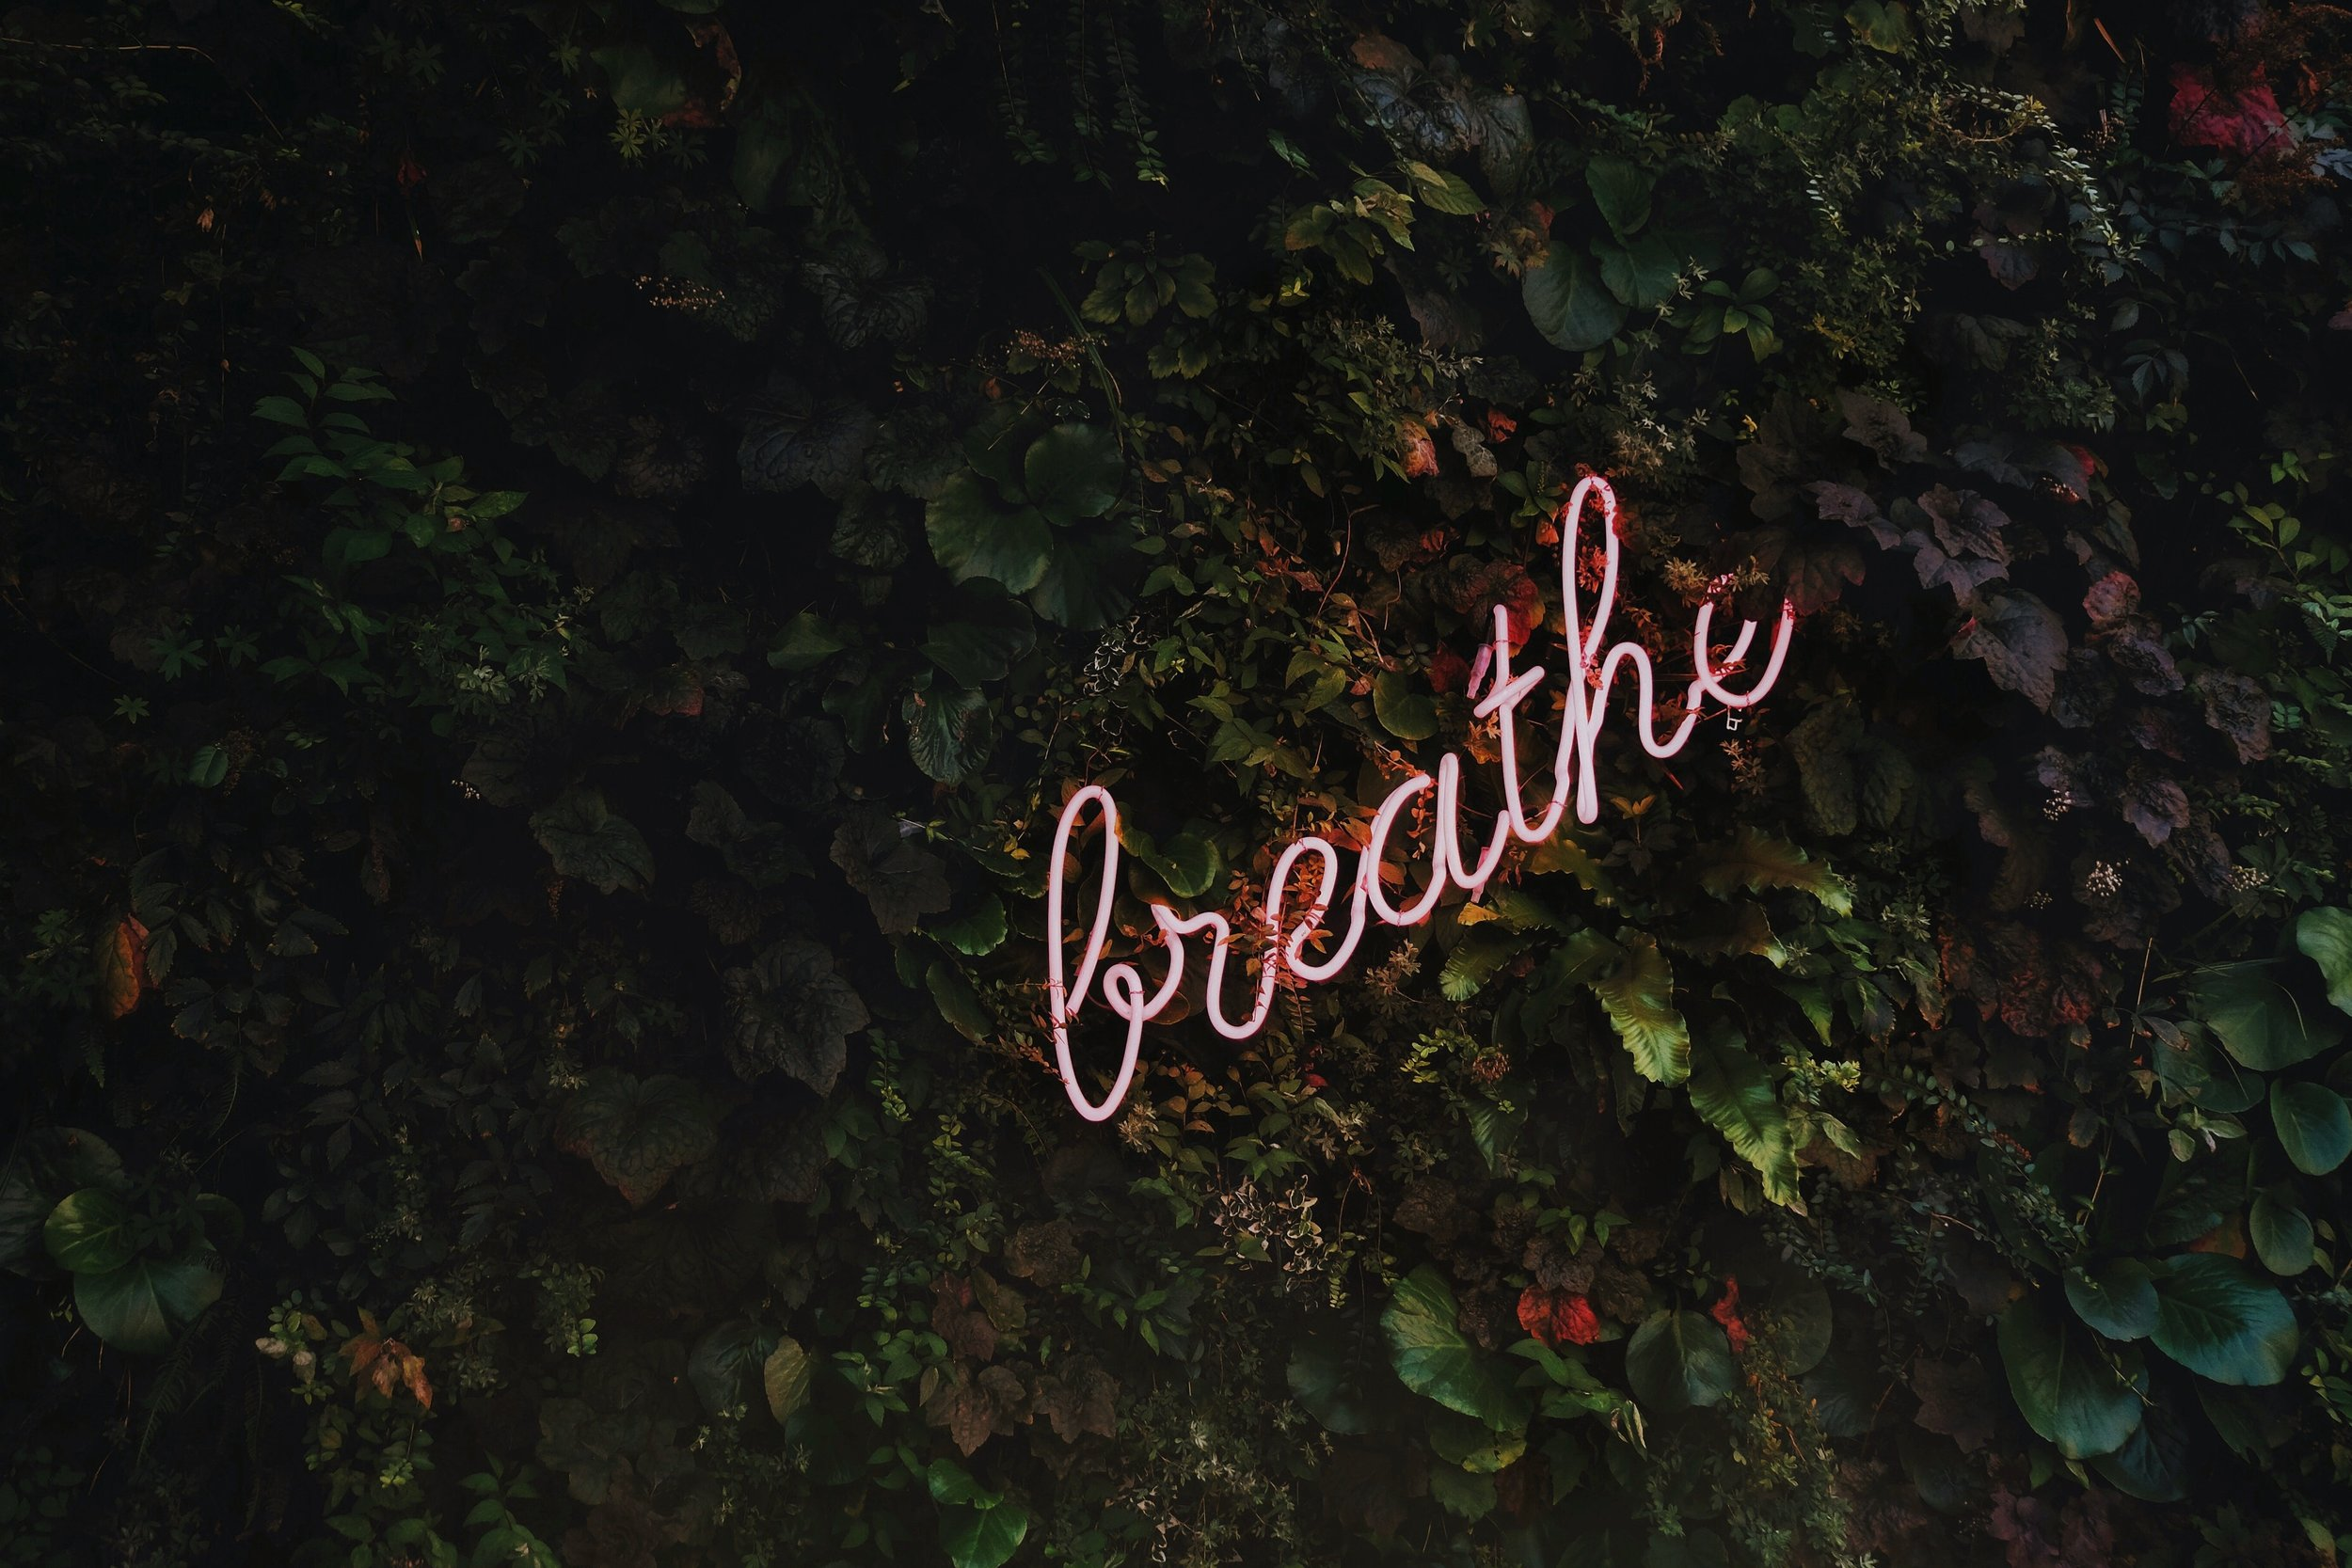 Taking a moment to breathe deeply is a simple relaxation technique actually.